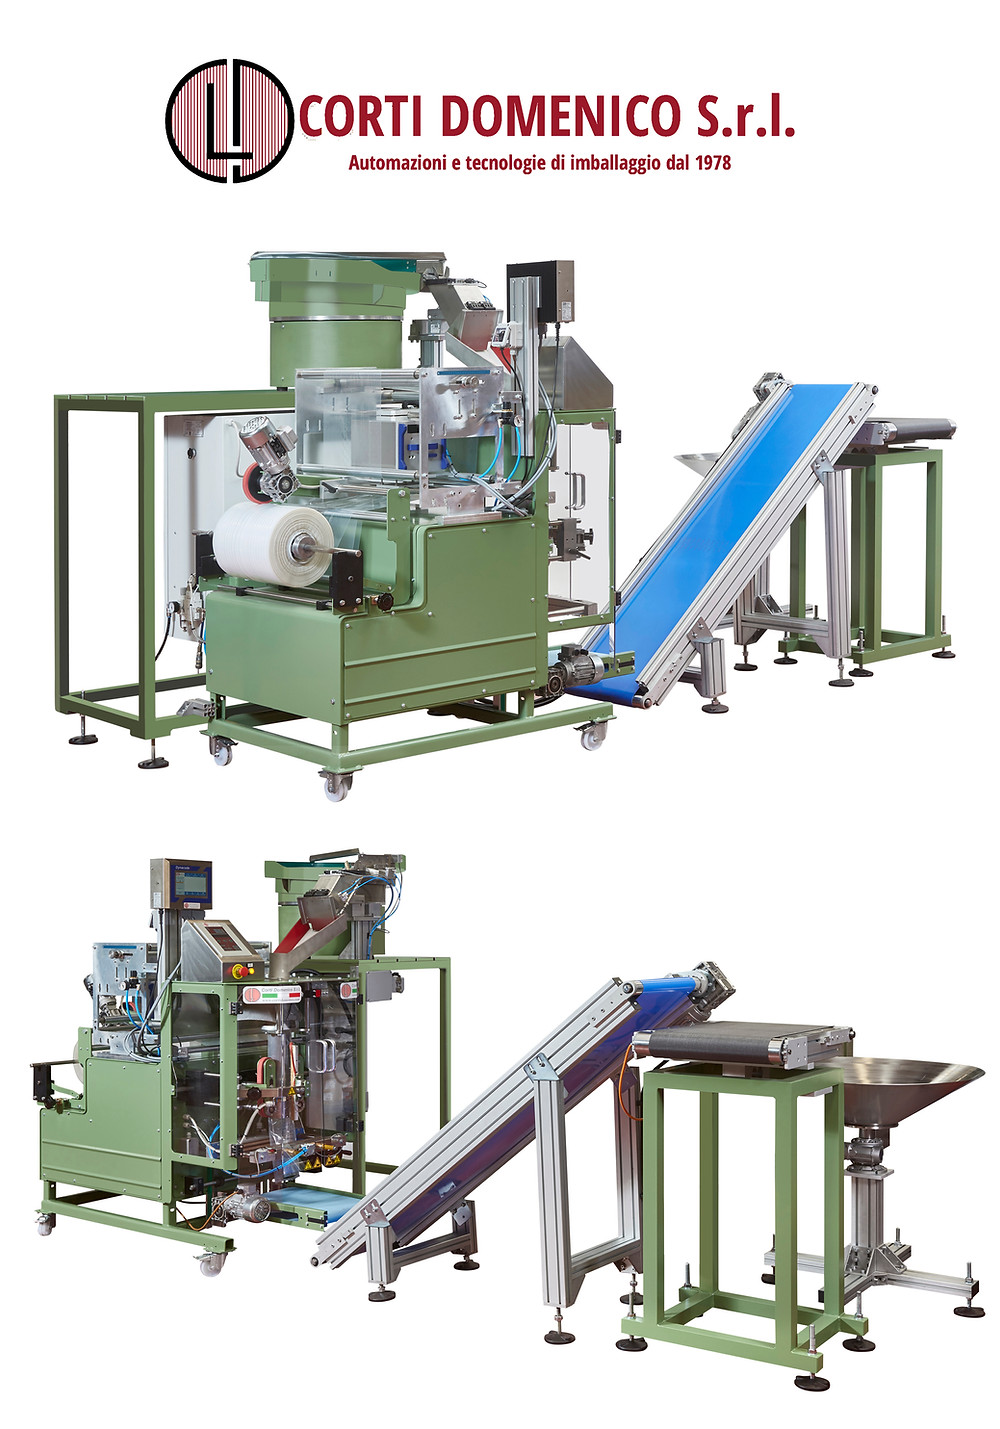 Corti Domenico Srl: automatic packaging line in bags  for fasteners